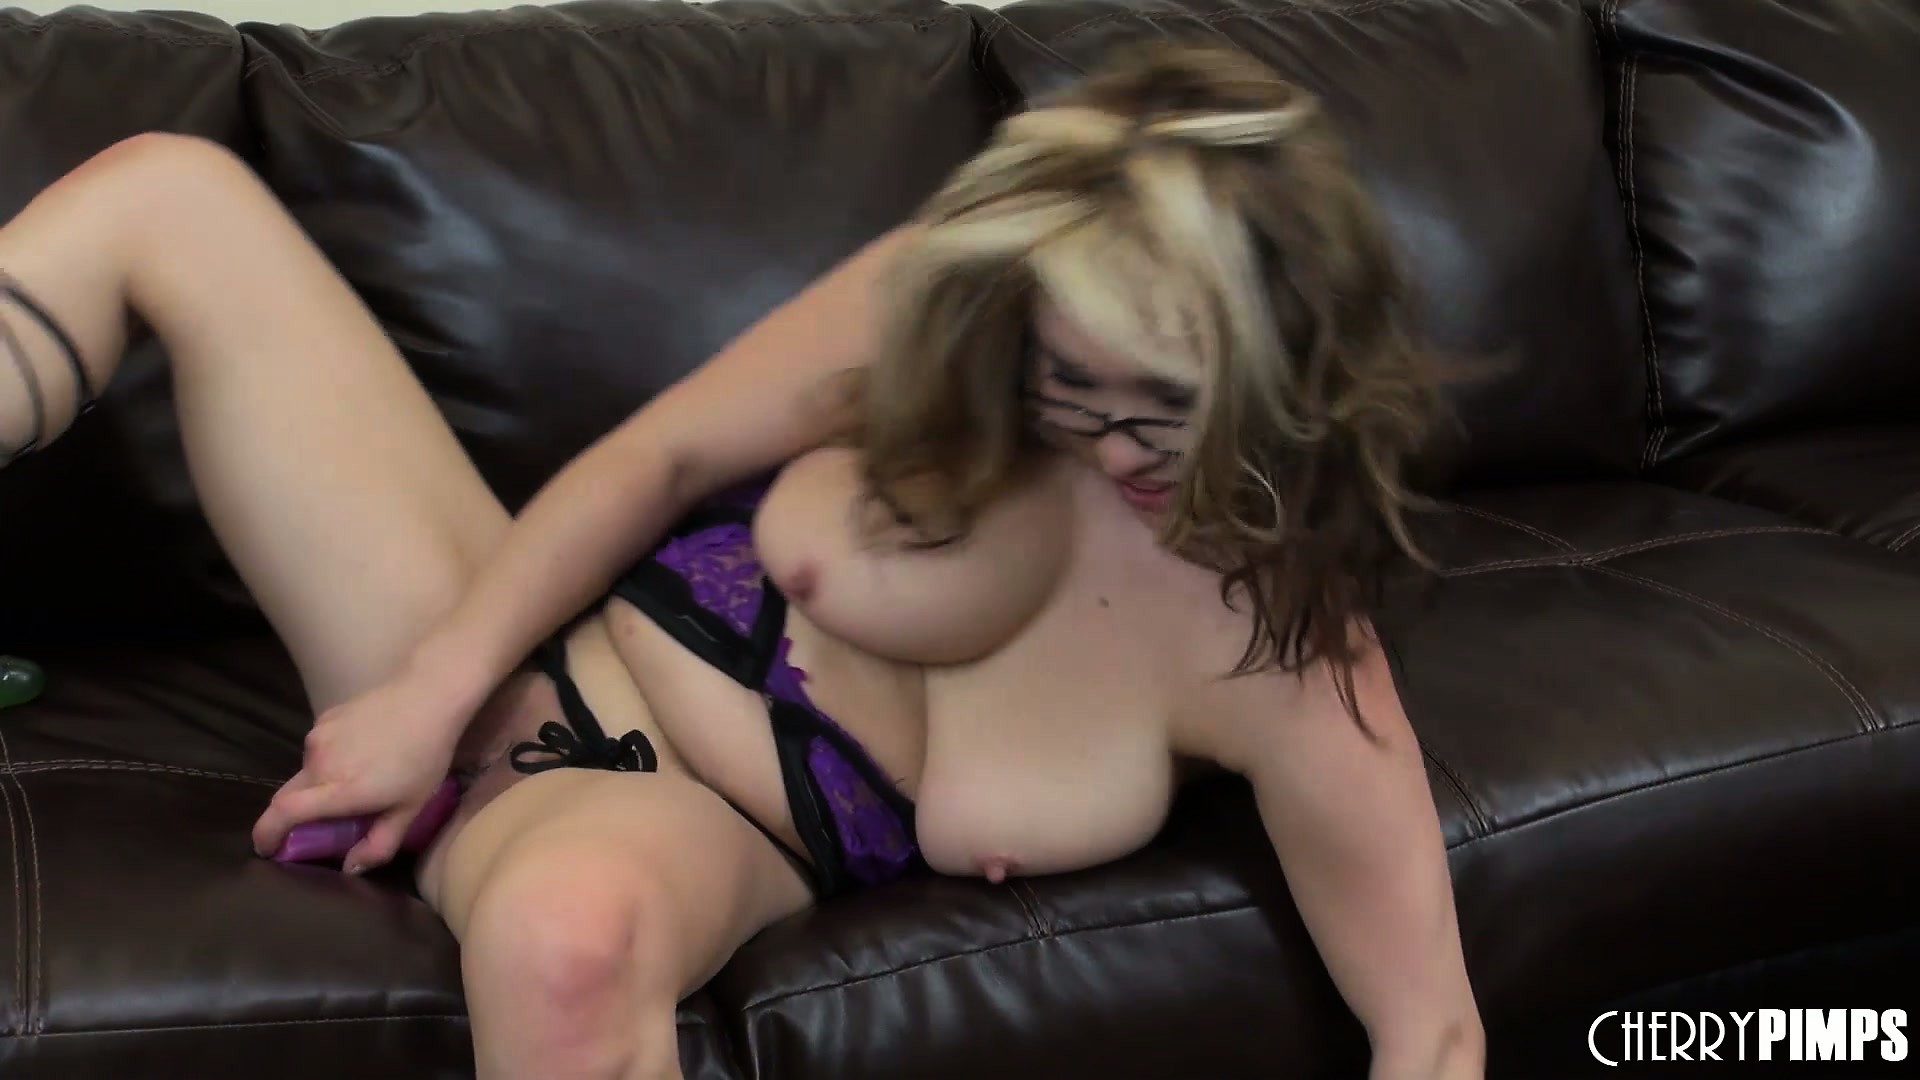 Porno Video of Delightful Muff Mia Rider Is Twinkling Her Sweet Little Star